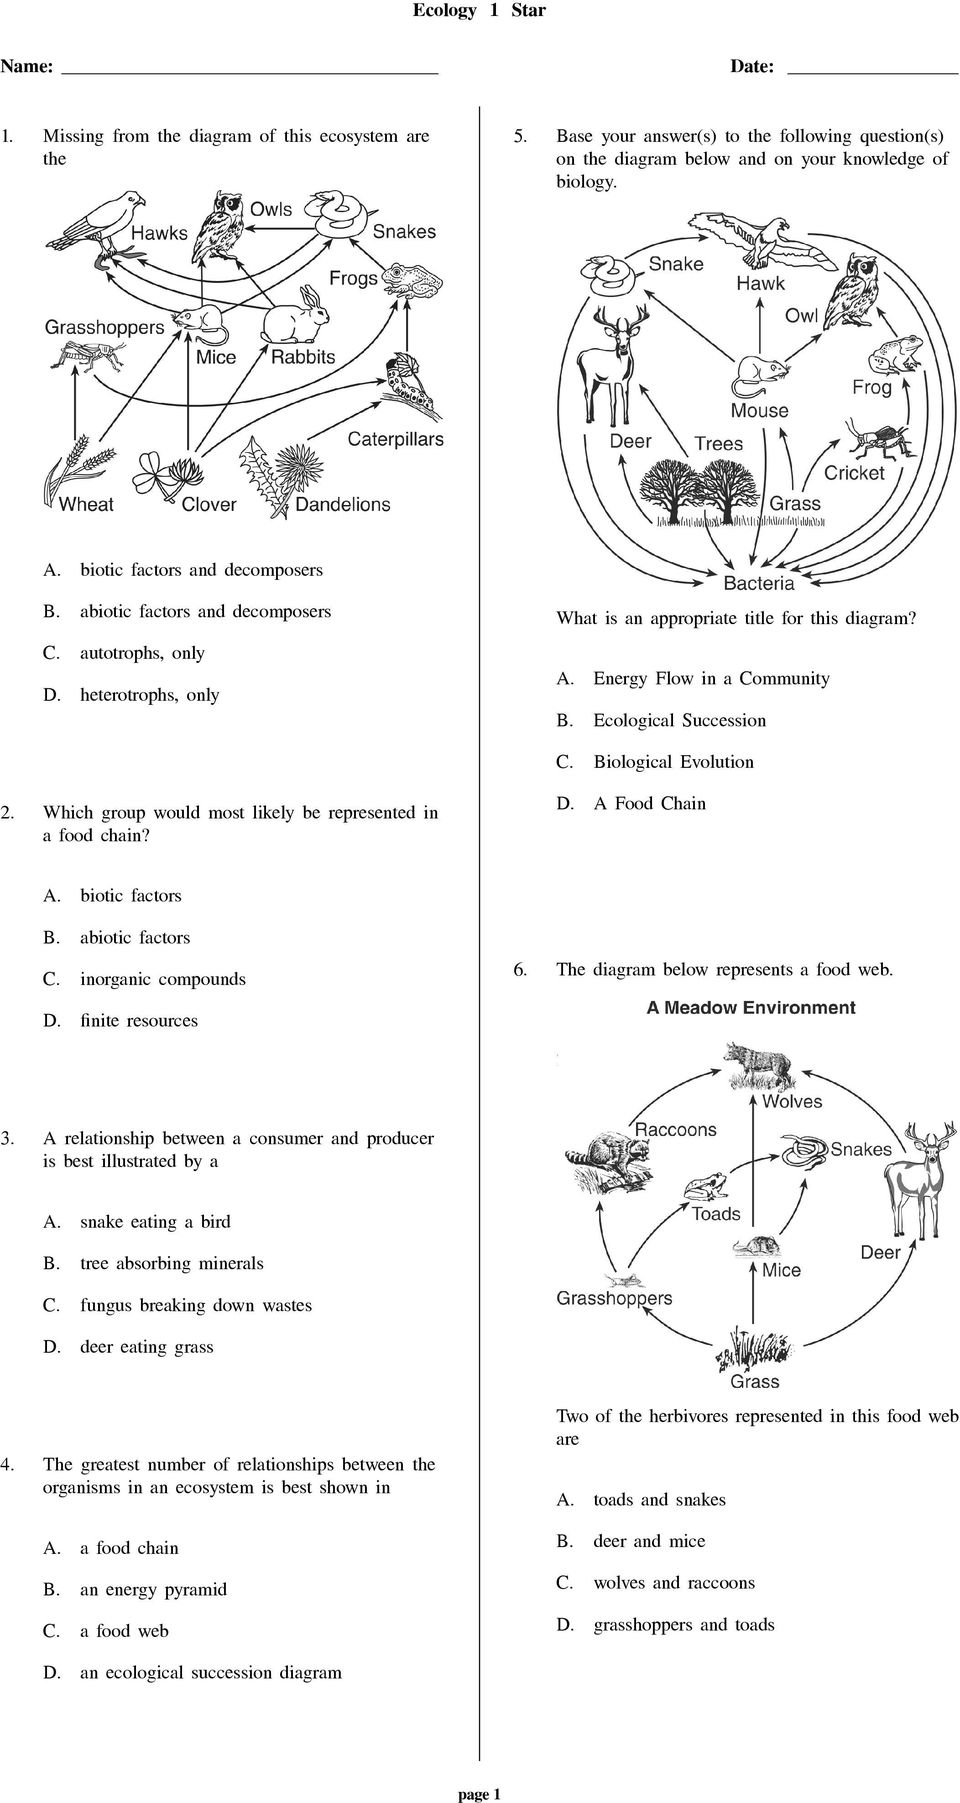 worksheet Biotic And Abiotic Factors Worksheet ecology 1 star missing from the diagram of this ecosystem are ecological succession iological evolution 2 which group would most likely be represented in a